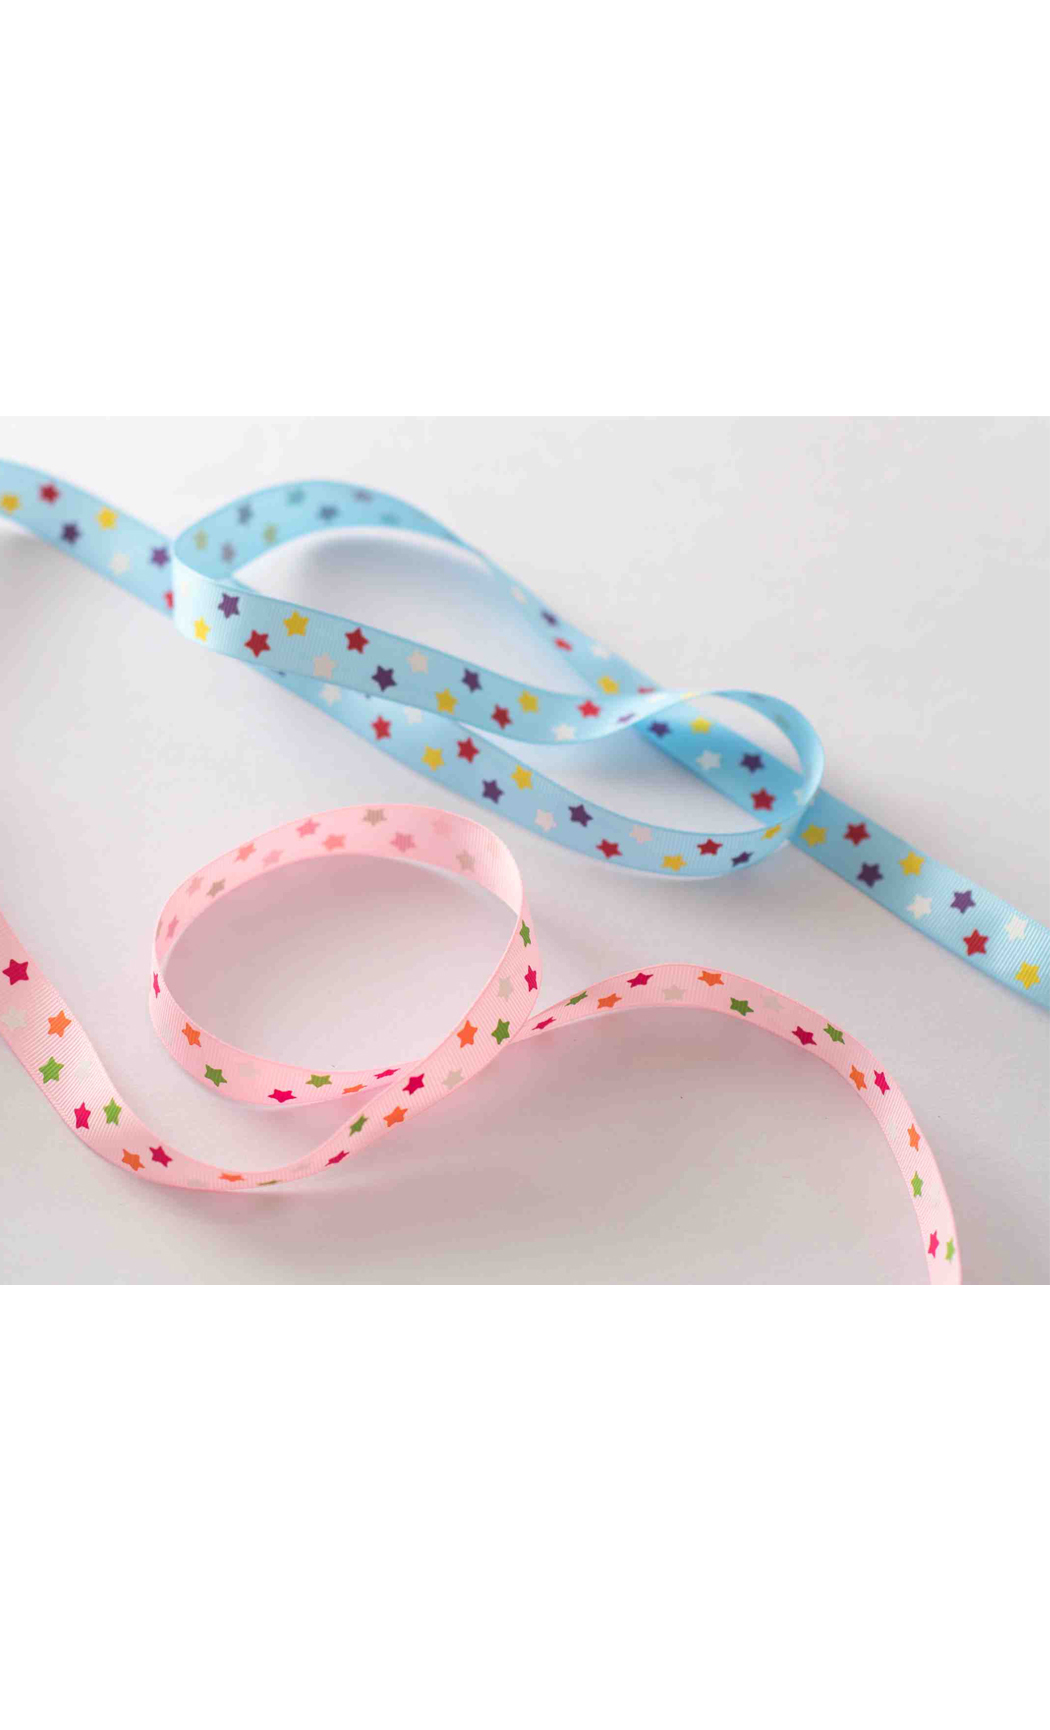 Thin Pink Ribbon with Multicolored Stars - Buy Online